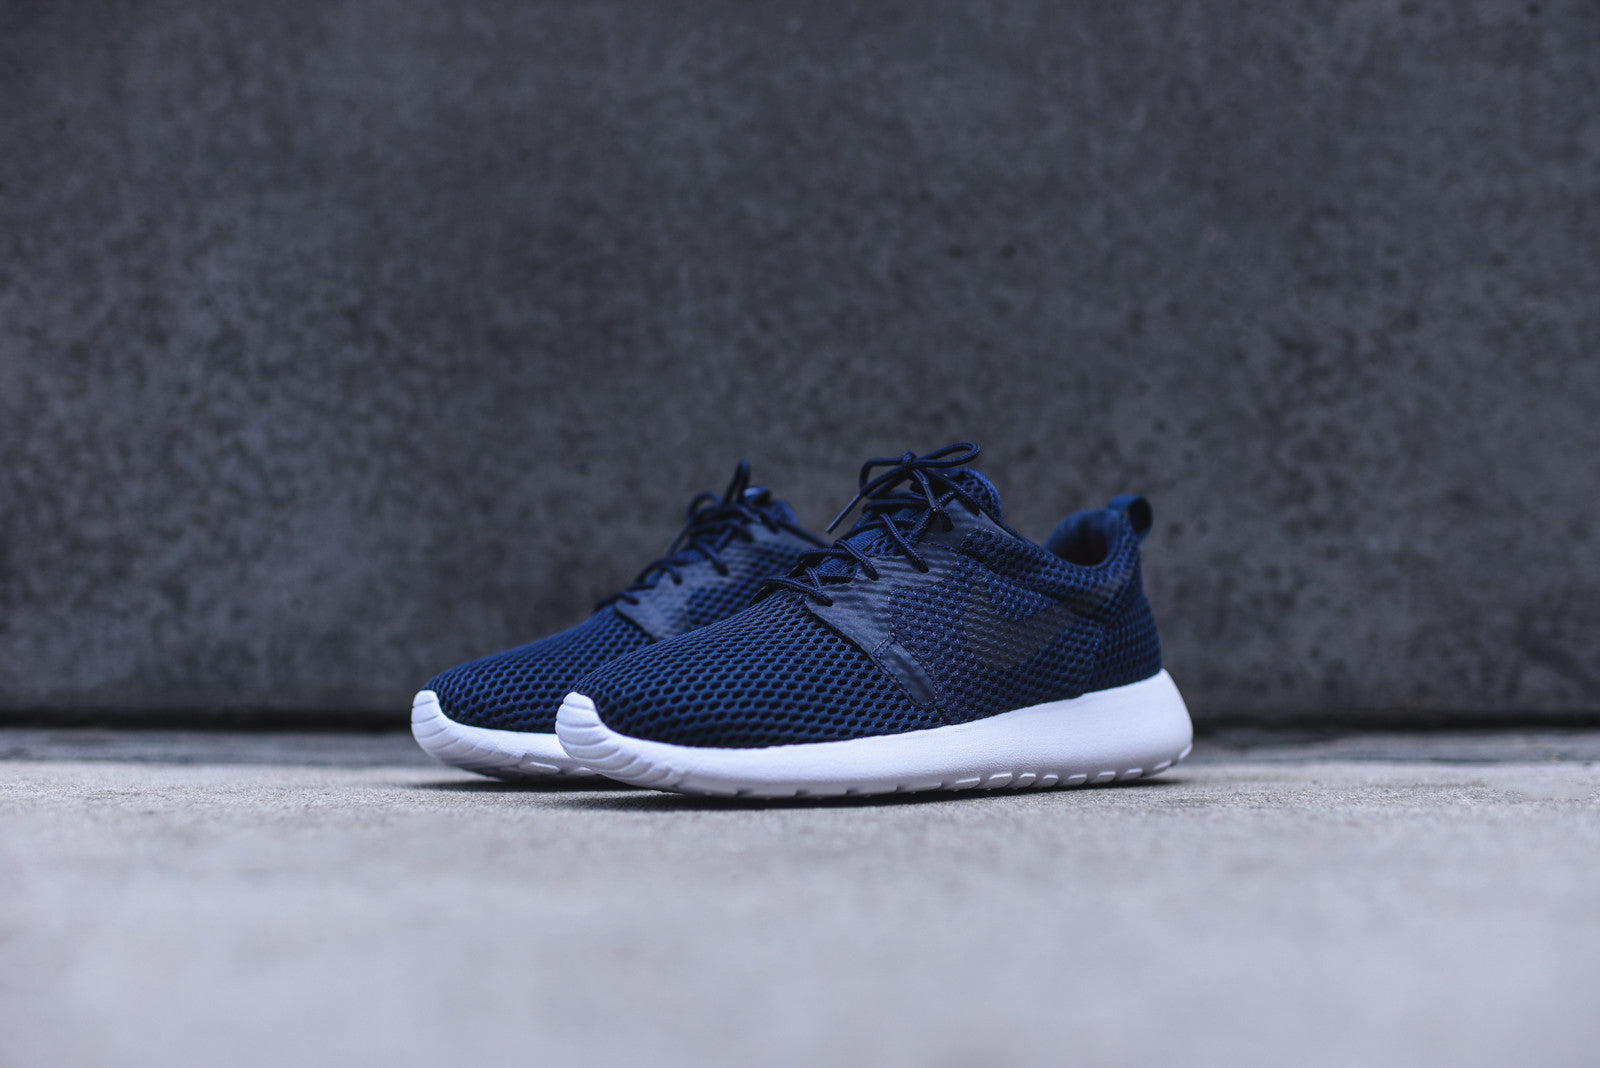 Nike Roshe One HYP BR - Midnight Navy